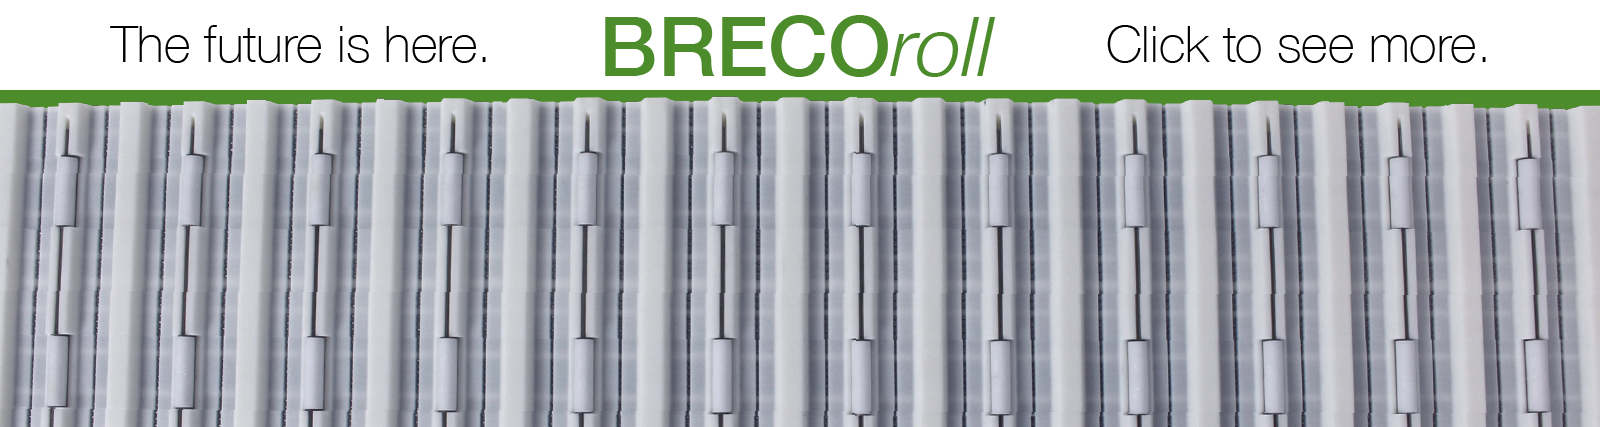 brecoroll image across the banner